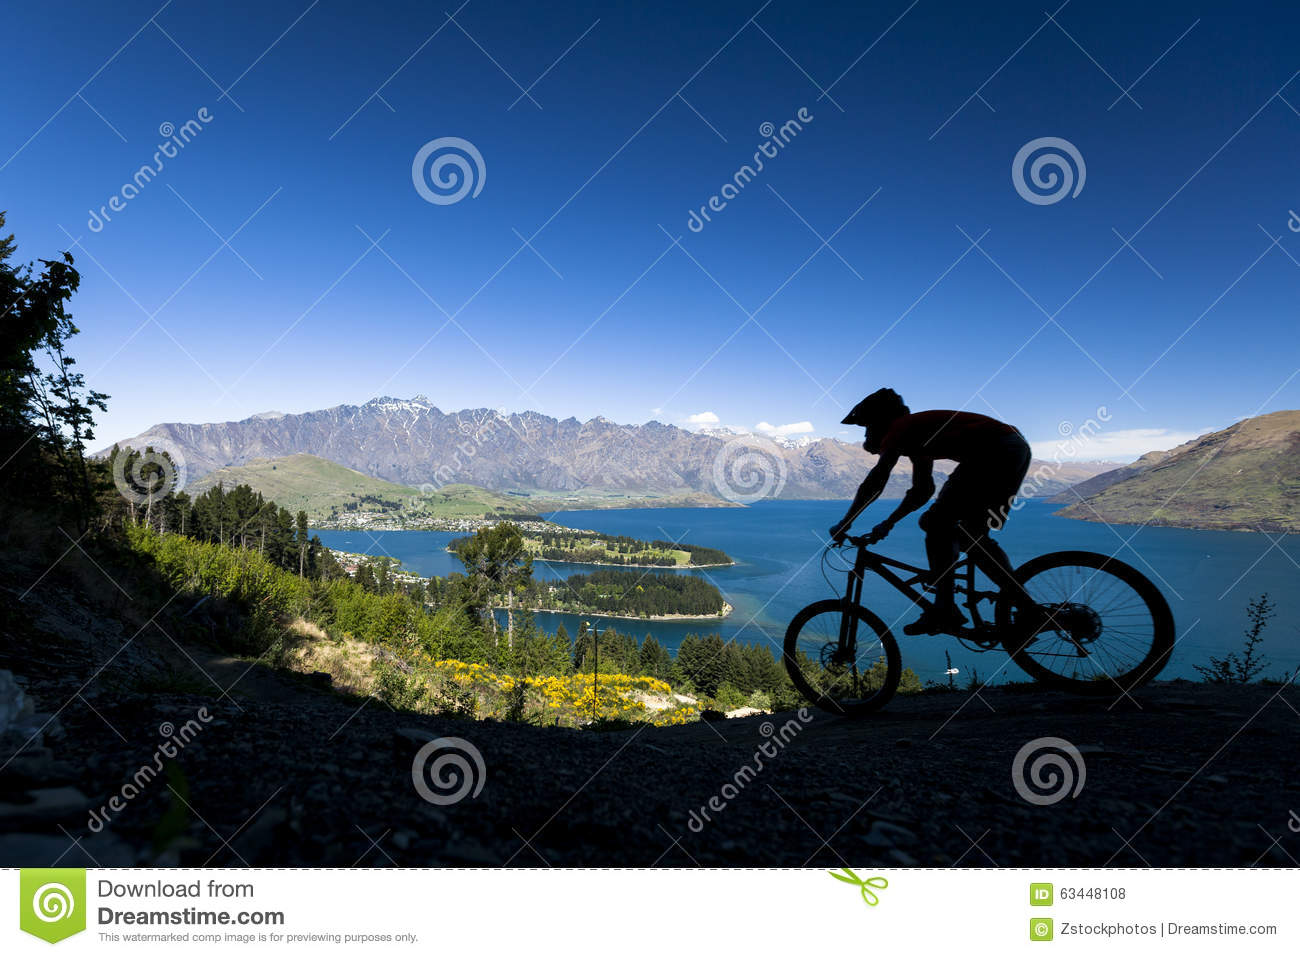 Download Silhouette Of Mountain Bike Rider In Queenstown Stock Photo - Image of ride, lake: 63448108